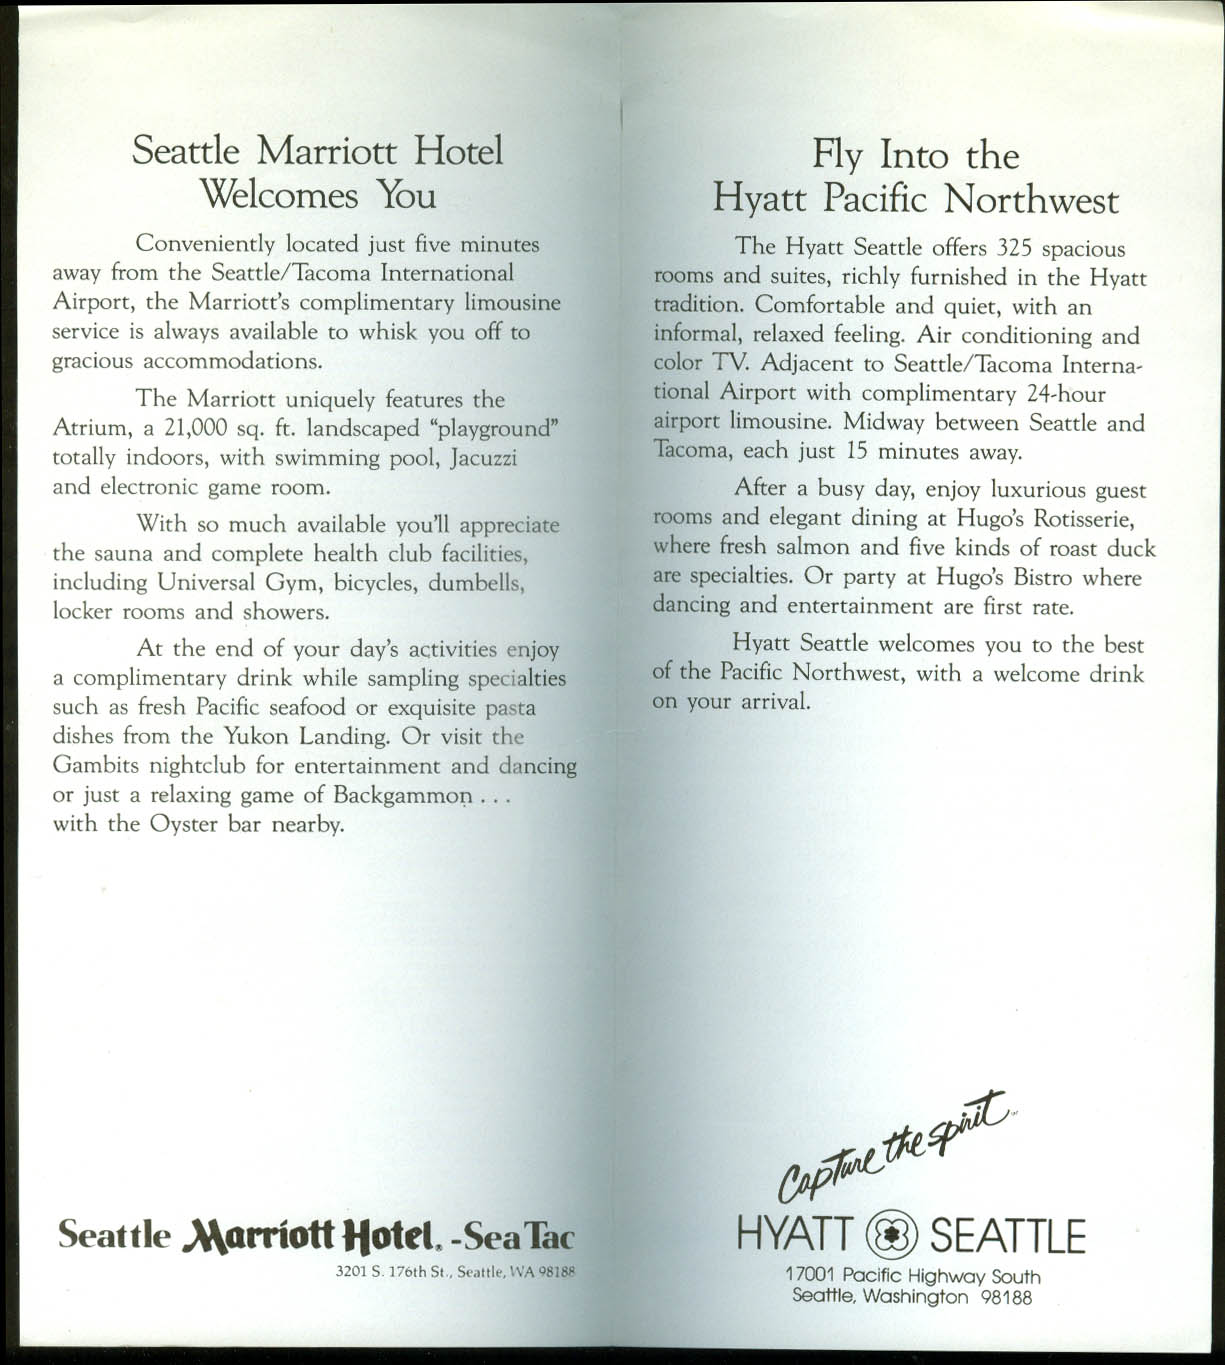 Thai Airlines Sleeper $45.95 Seattle Hotel Special timetable airline folder 1983